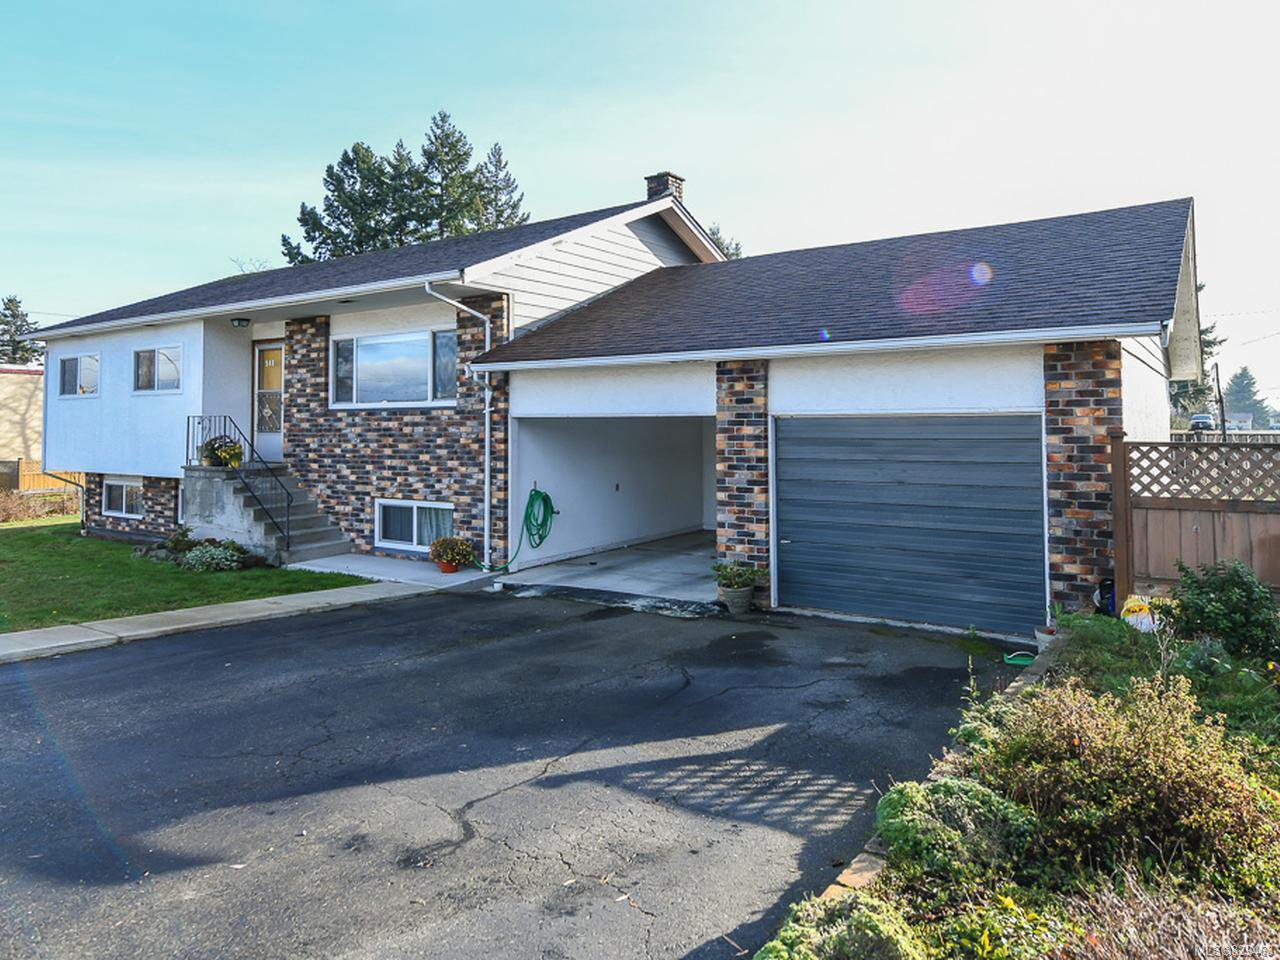 Main Photo: 540 17th St in COURTENAY: CV Courtenay City House for sale (Comox Valley)  : MLS®# 829463